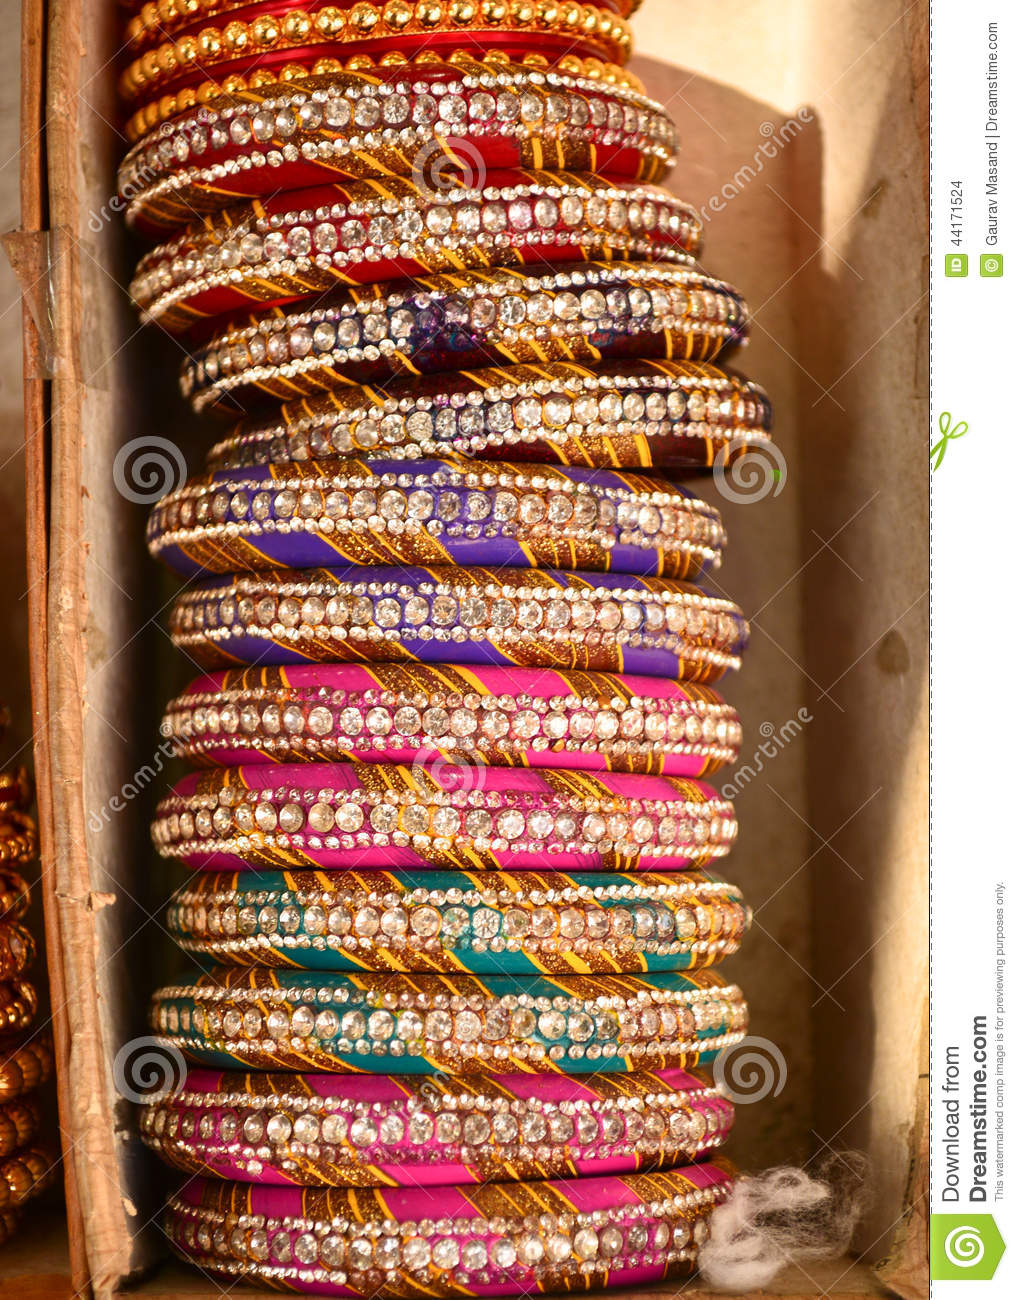 and bangle nagar dealers cosmetic rajendra bangles bareily bzdet brijwasi photos complex bareilly shop commercial